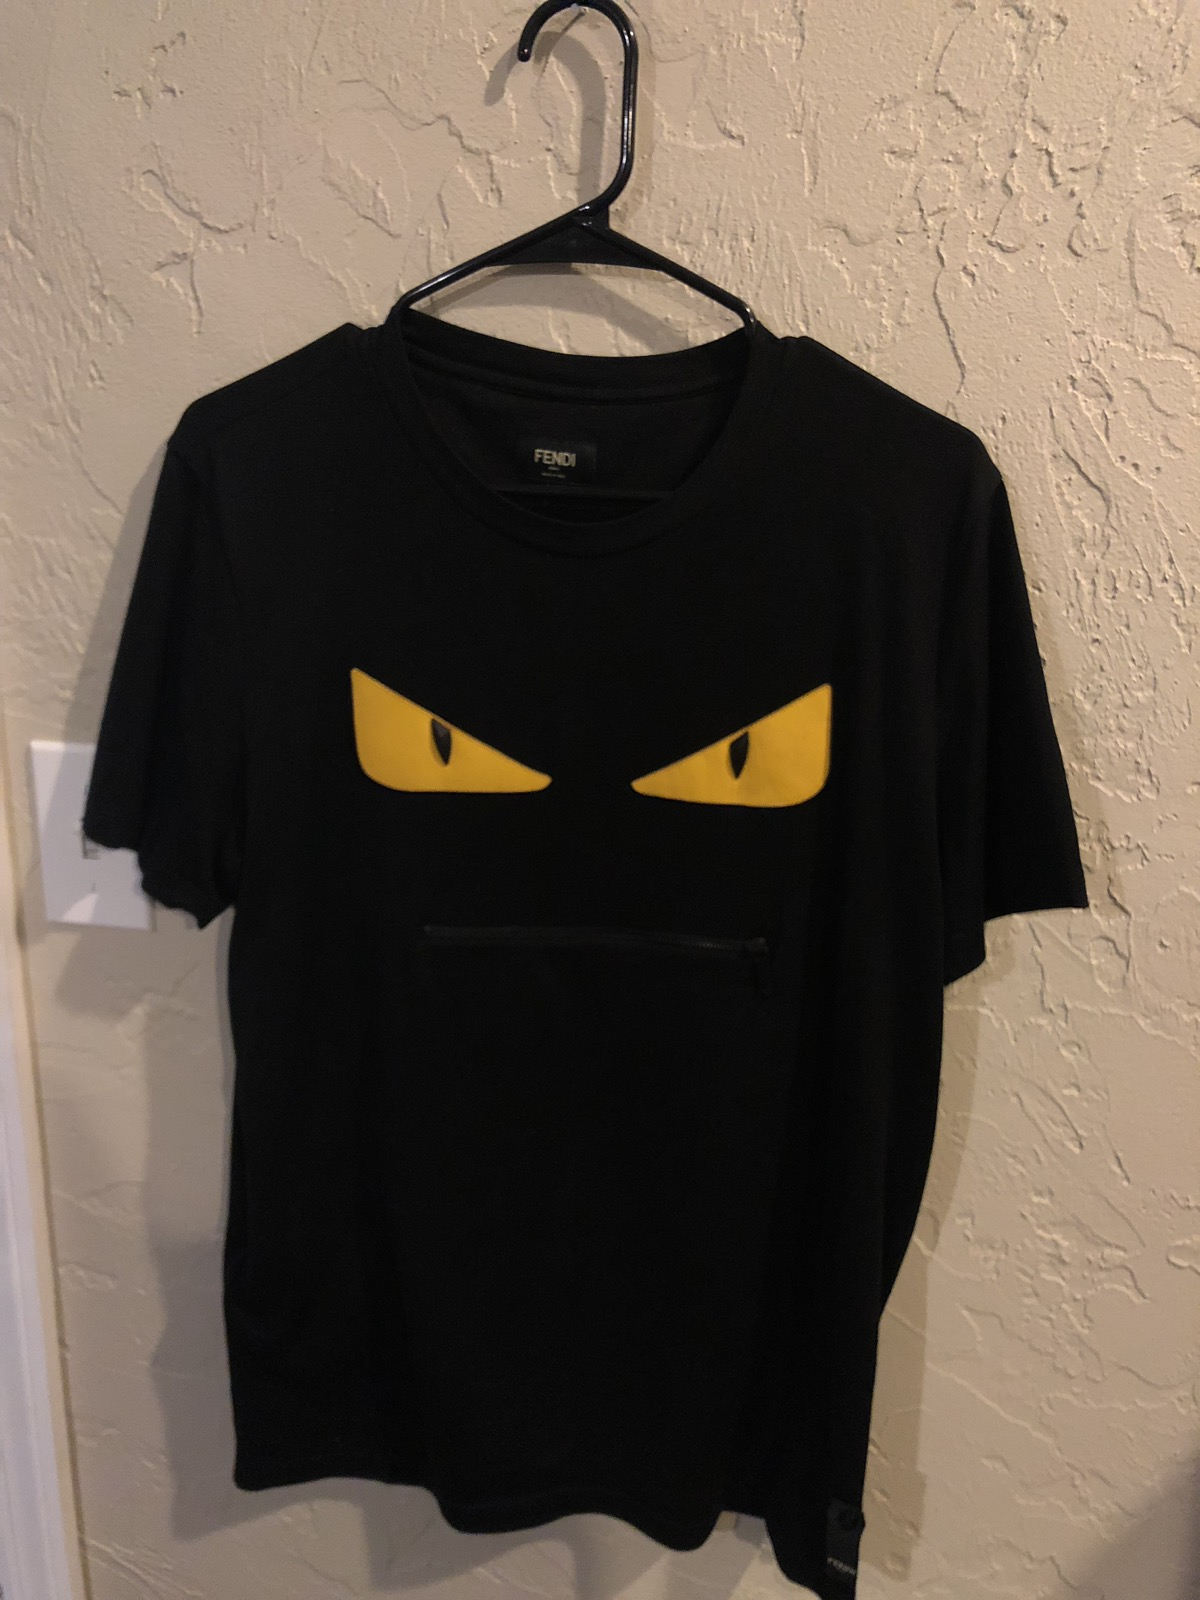 Fendi Bag Bugs Zip Tee PROOF OF AUTHENTICITY Size m - Short Sleeve T-Shirts  for Sale - Grailed 5eb0d2f60608c